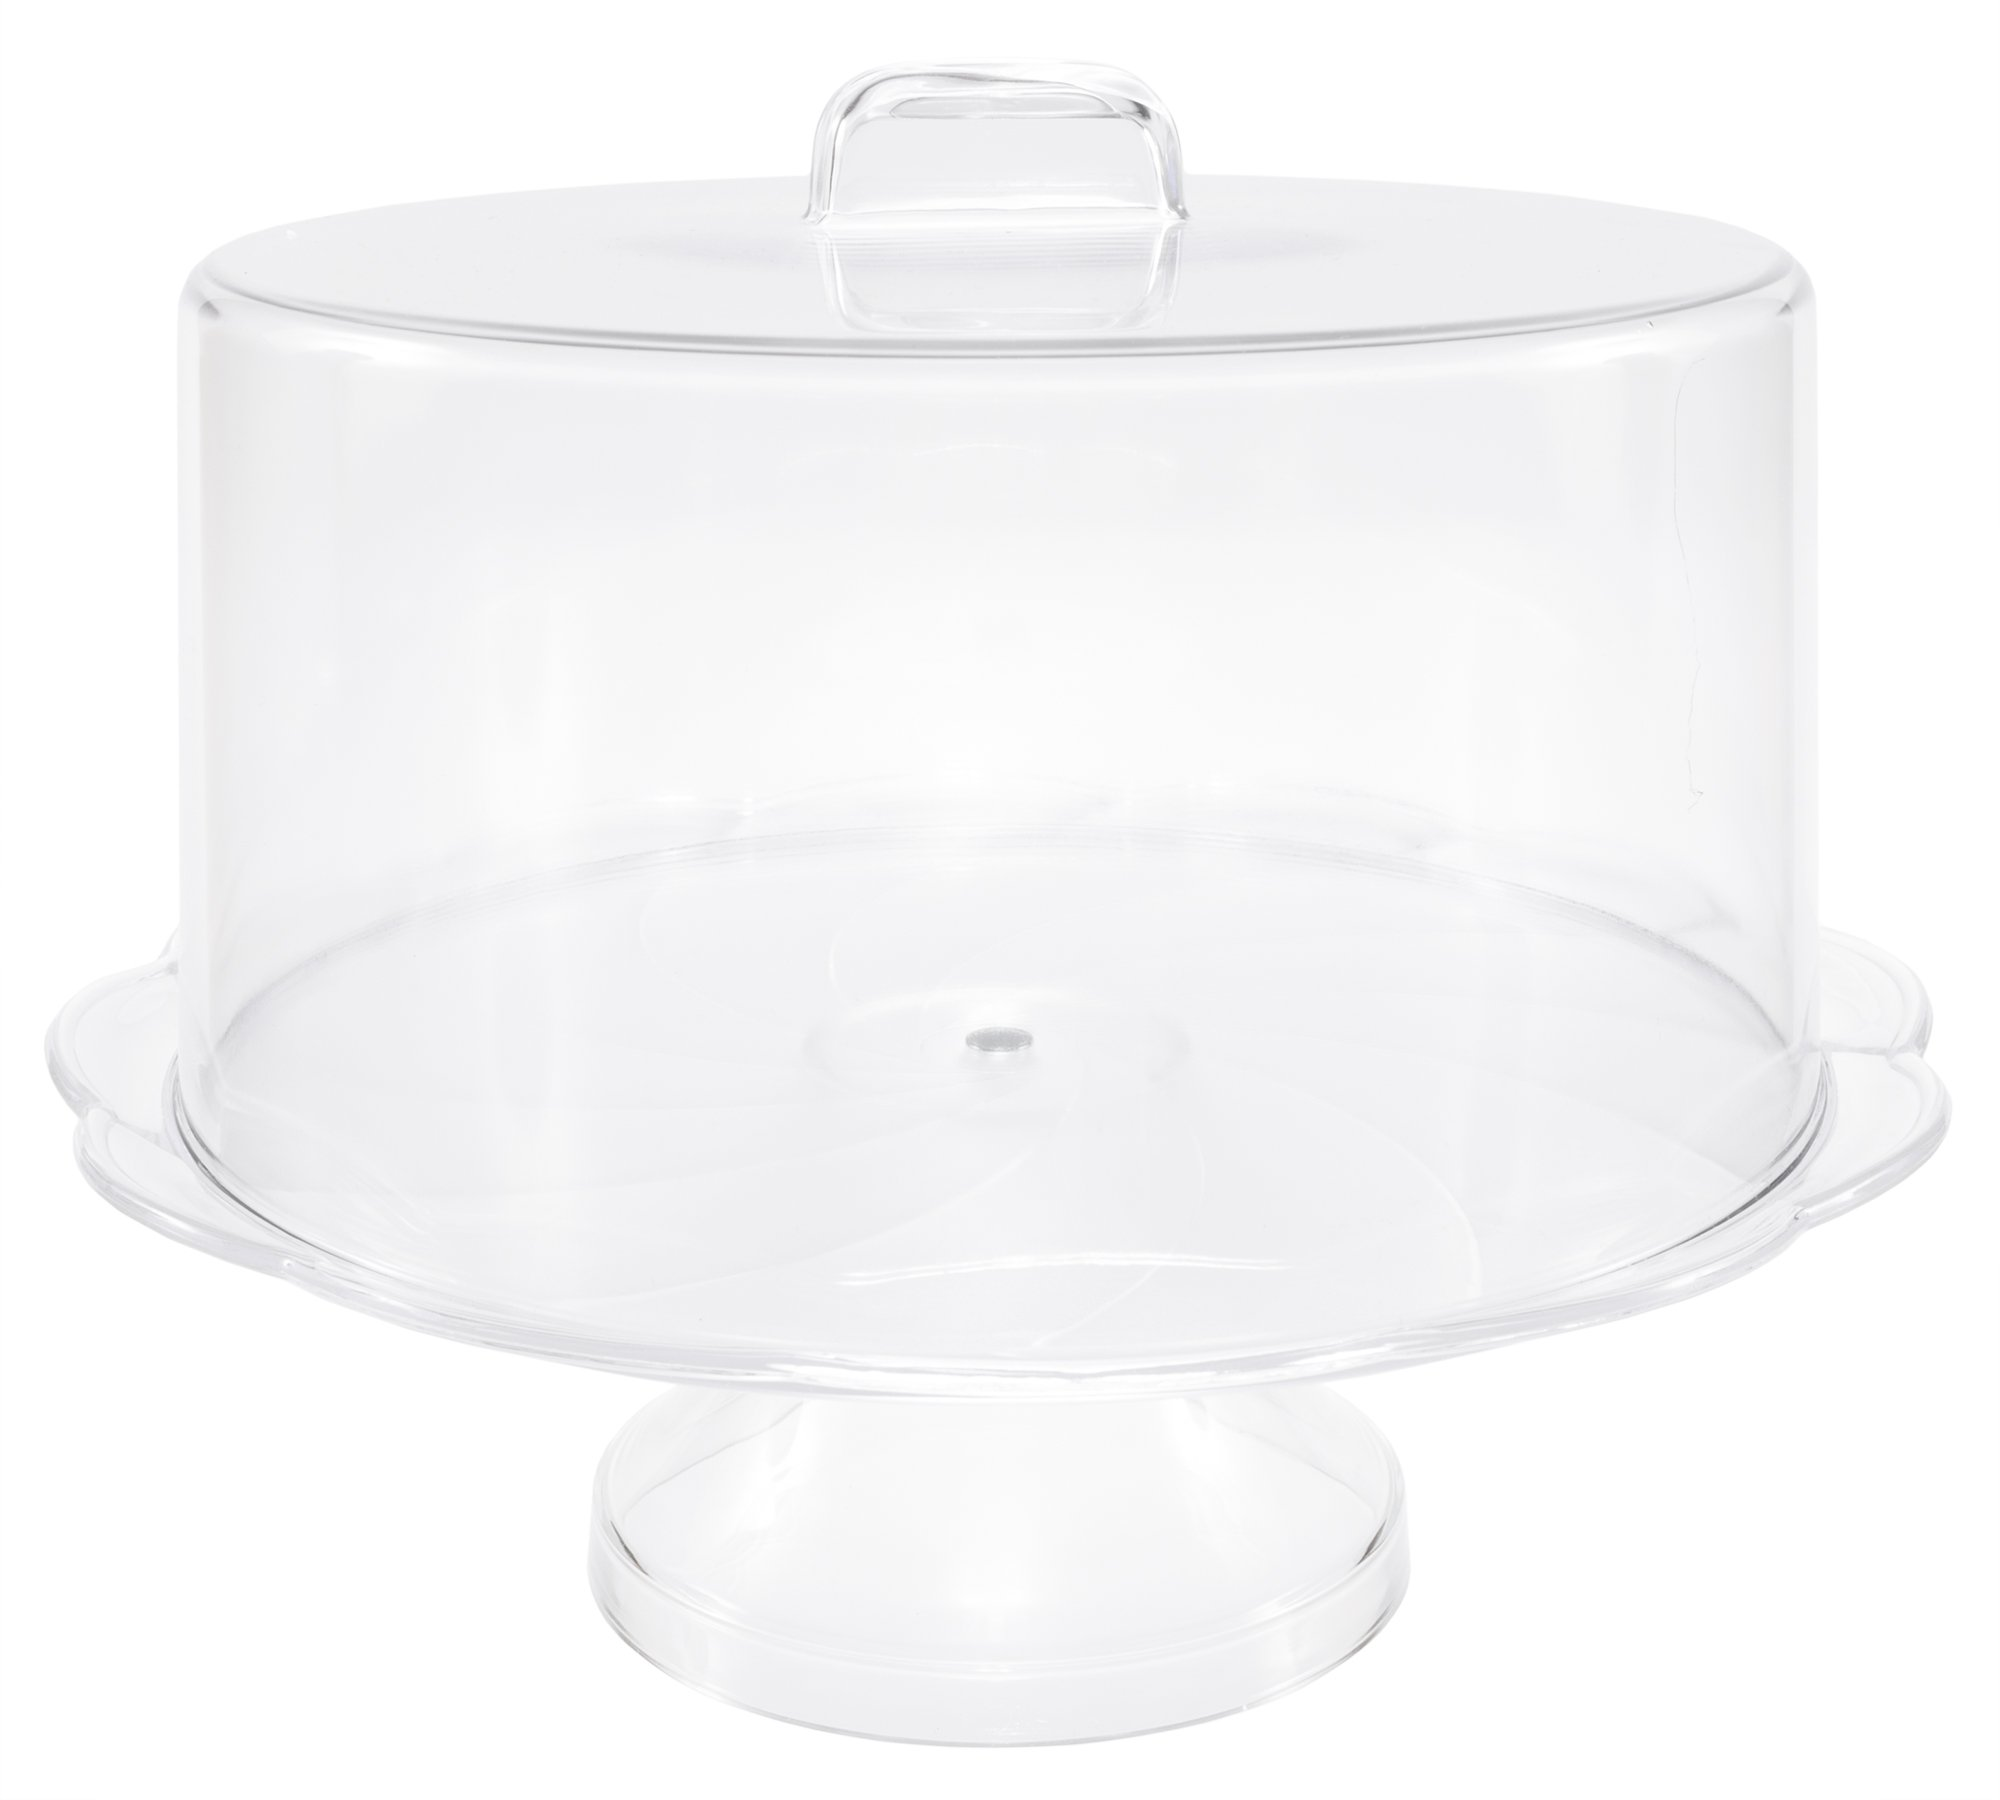 pedestal classic kitchen touch pdx cake classictouch wayfair glass with stand dome tabletop